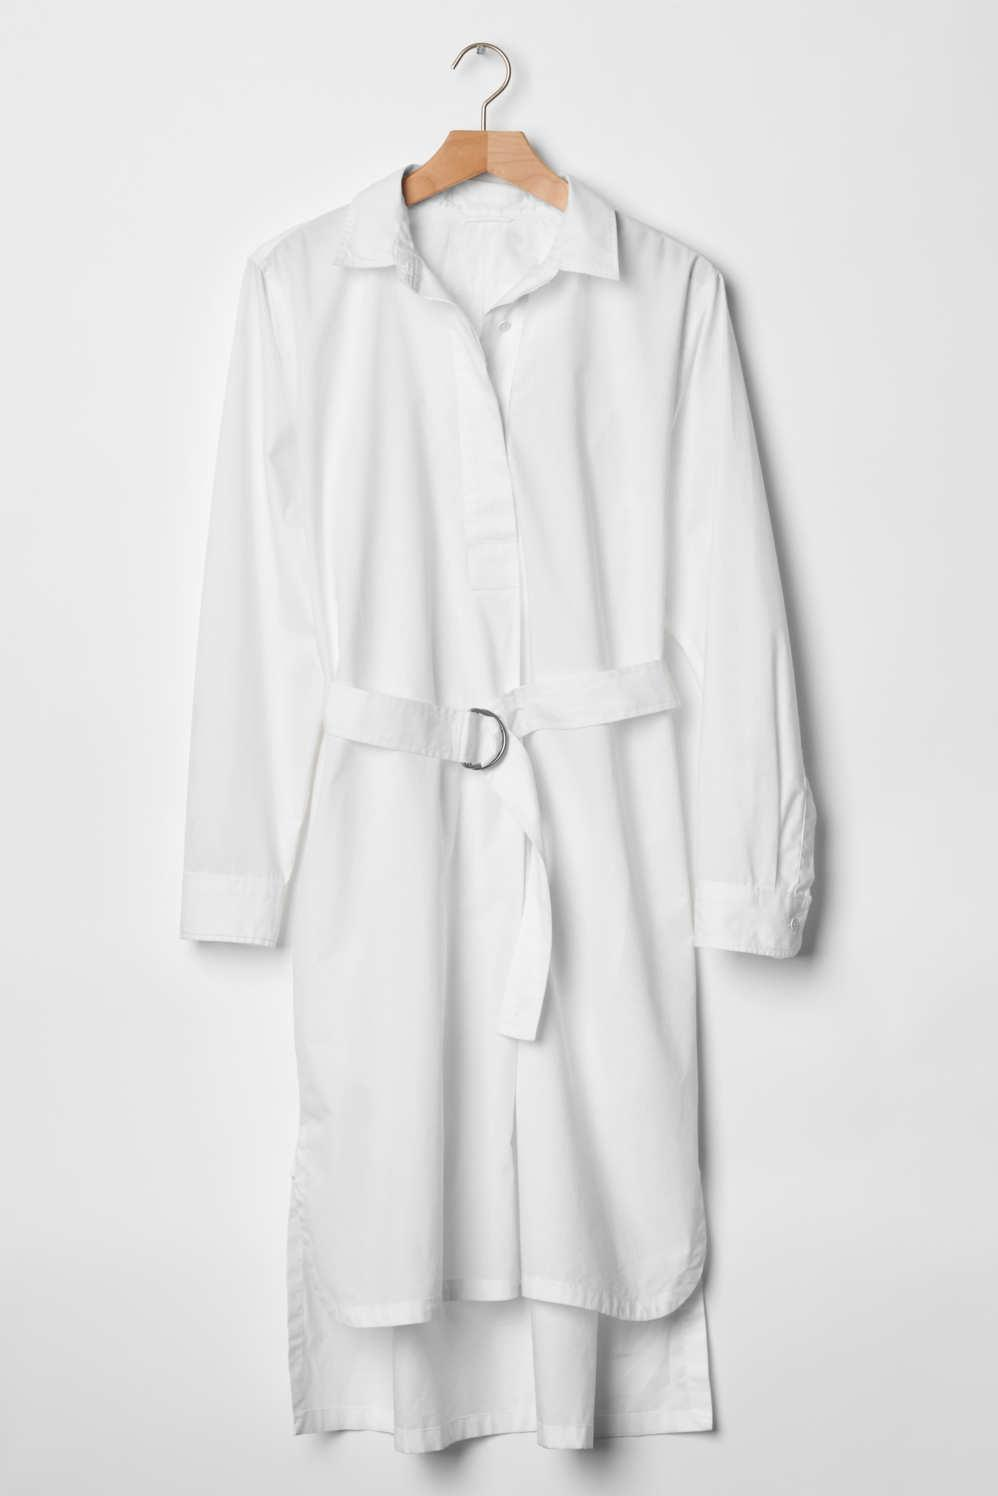 Meet your new favorite white shirtdress: http://t.co/C2KNmEWqrZ http://t.co/1Y1uCmJwgL